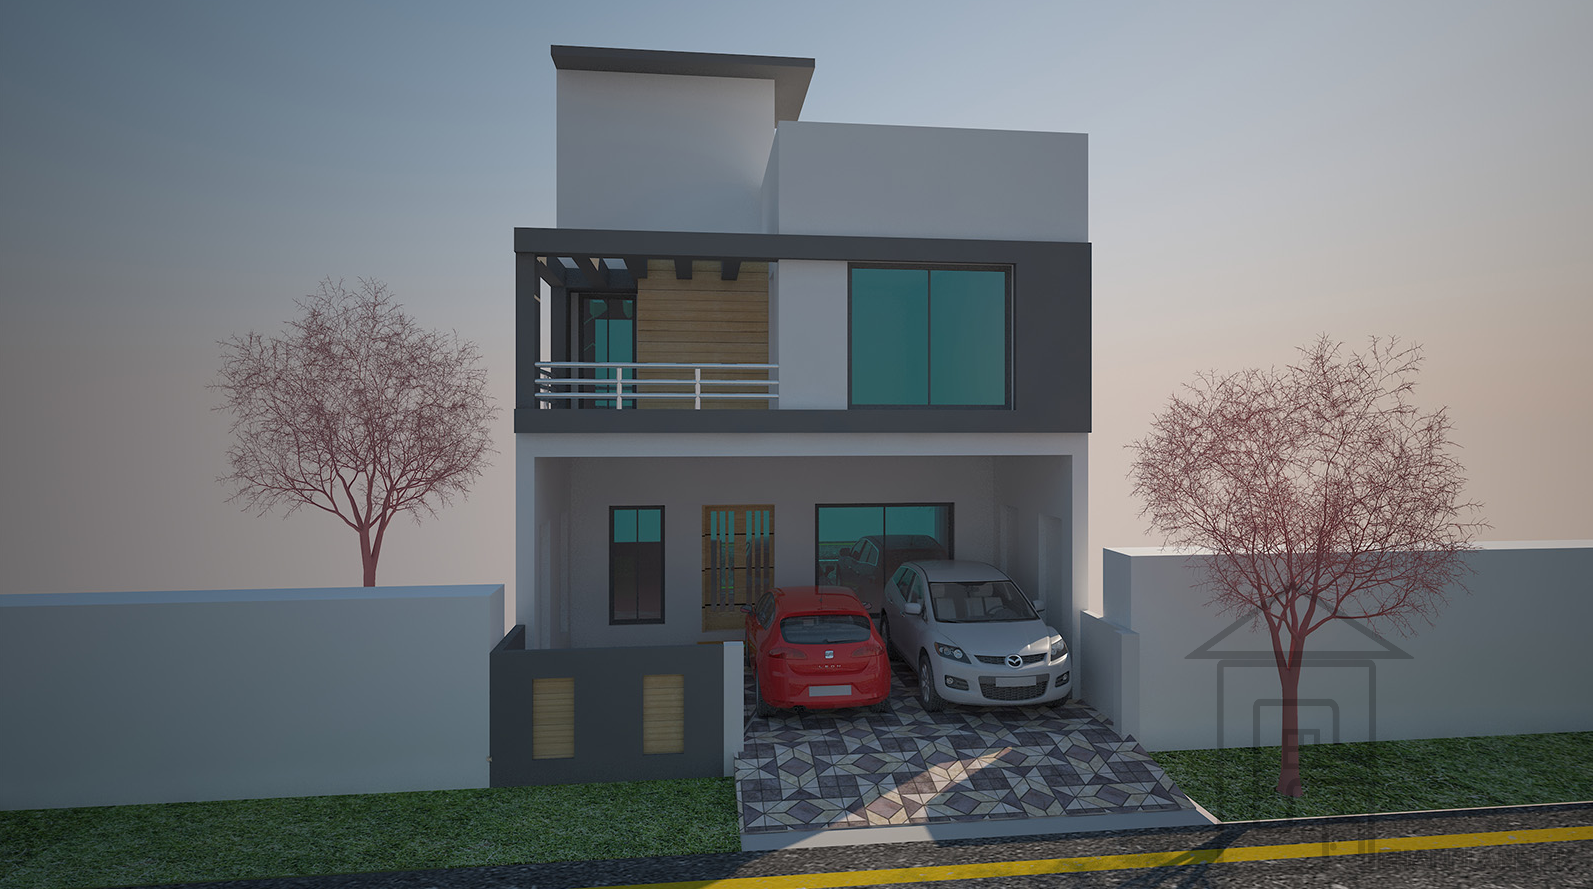 120 sq yards pakistani front elevation with basement the home design accommodates larger family as it has 4 bedrooms with 4 attached bathrooms